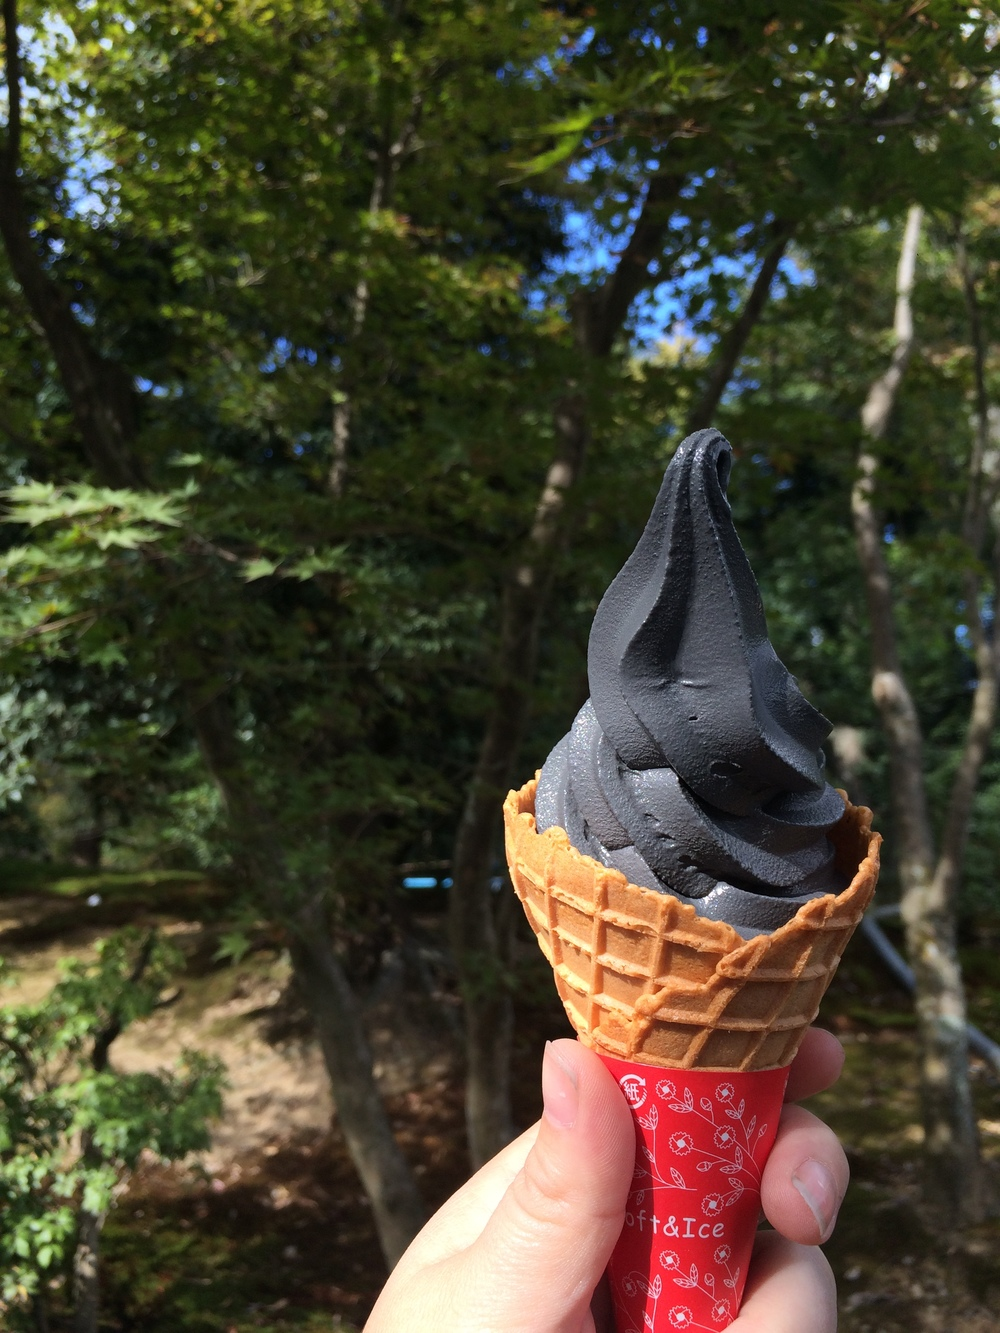 Black Sesame Ice Cream. The Golden Pavilion, Kyoto, Japan.